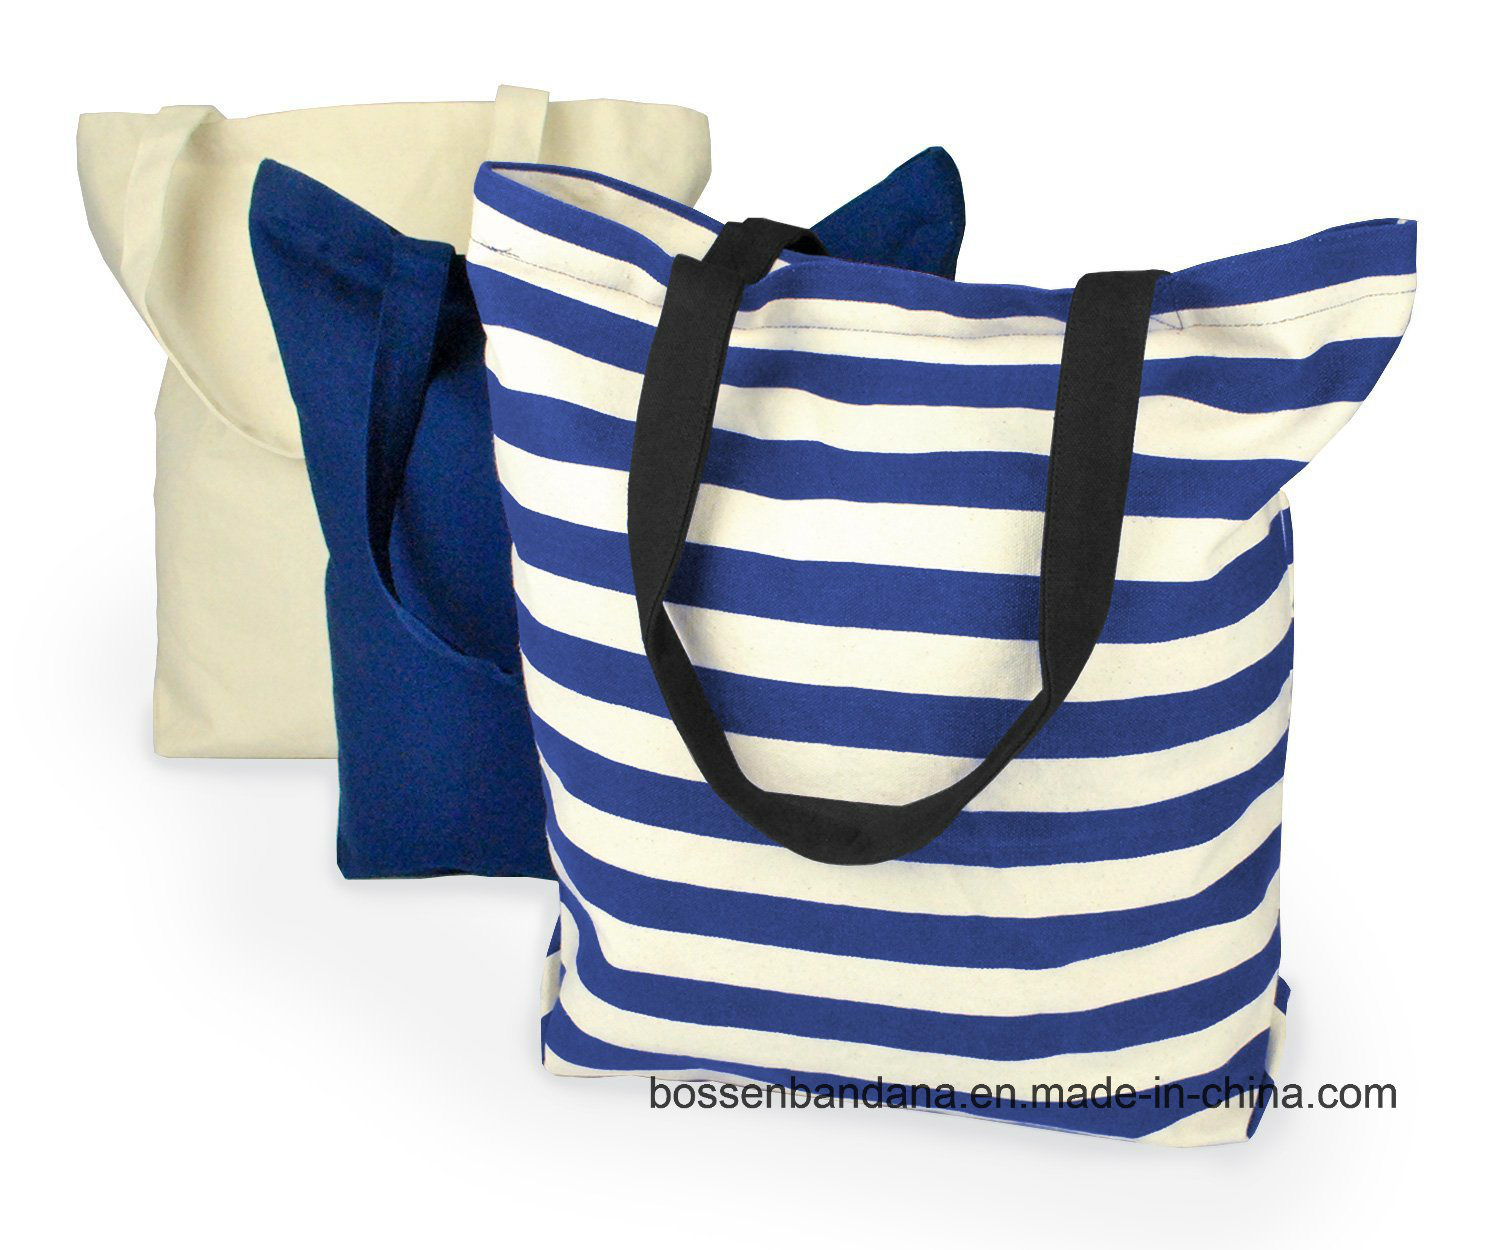 OEM Produce Customized Logo Printed Promotional Cotton Canvas Craft Tote Bag pictures & photos